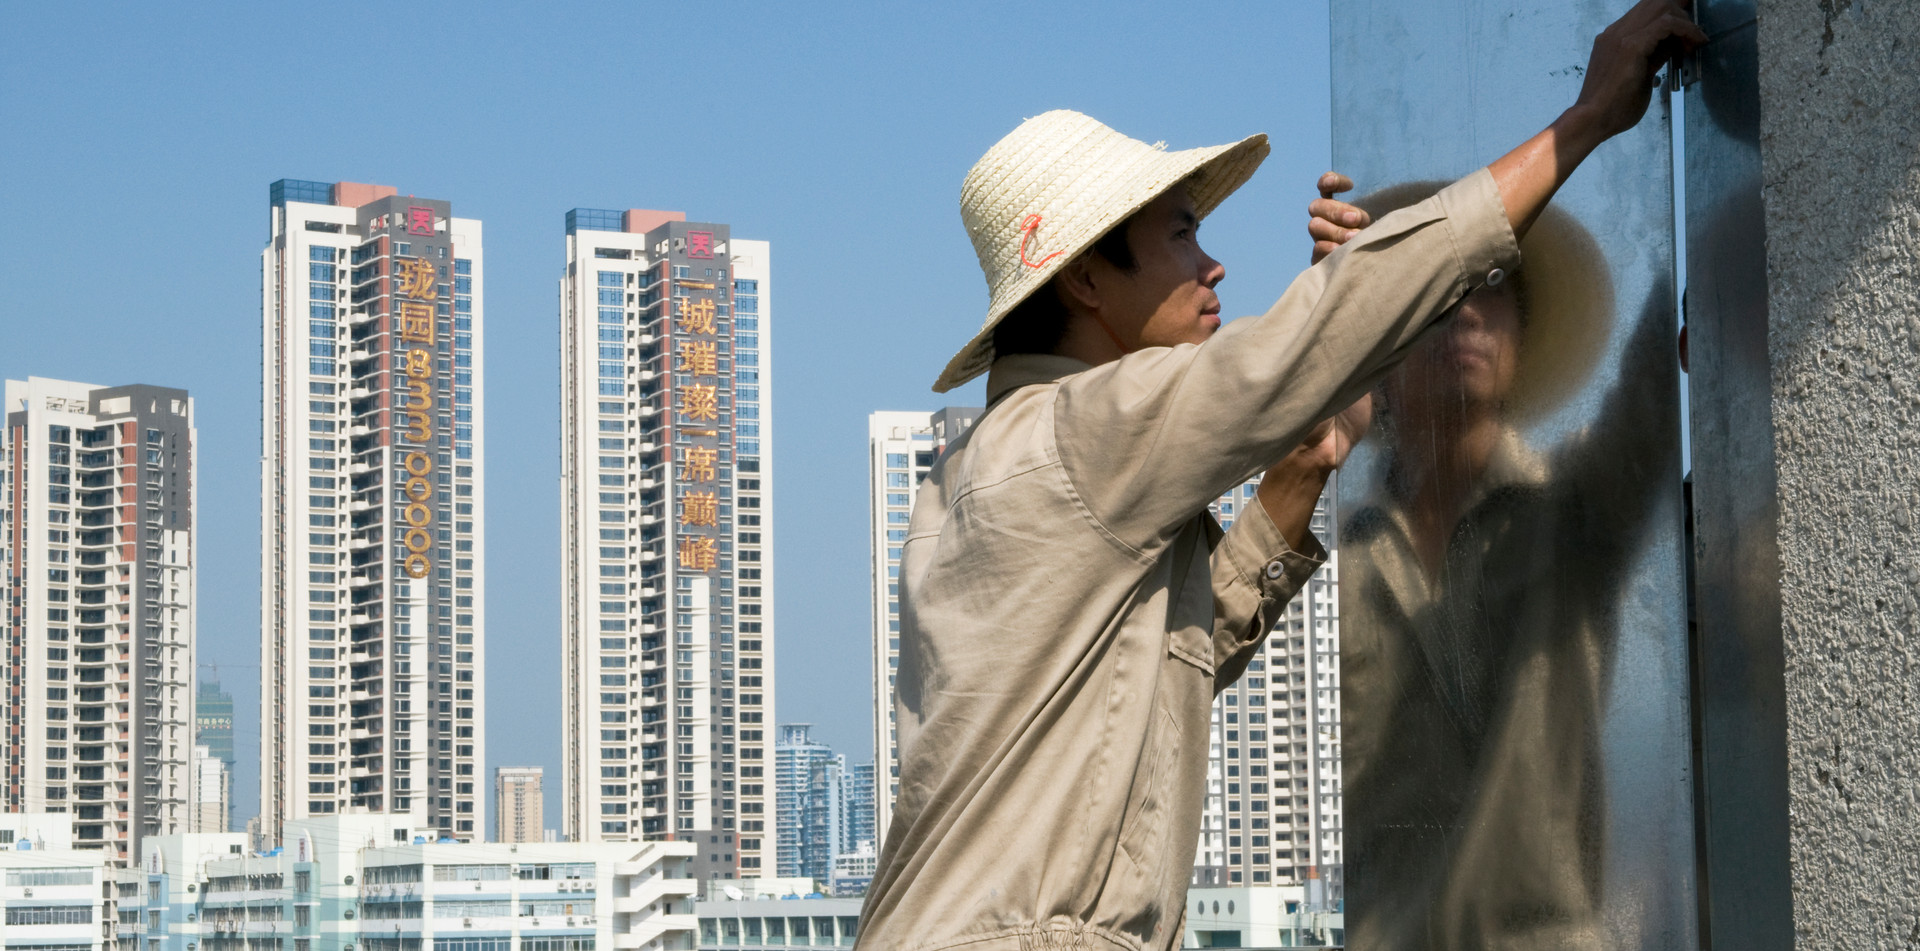 Construction boom in southern China puts great pressure on natural resources